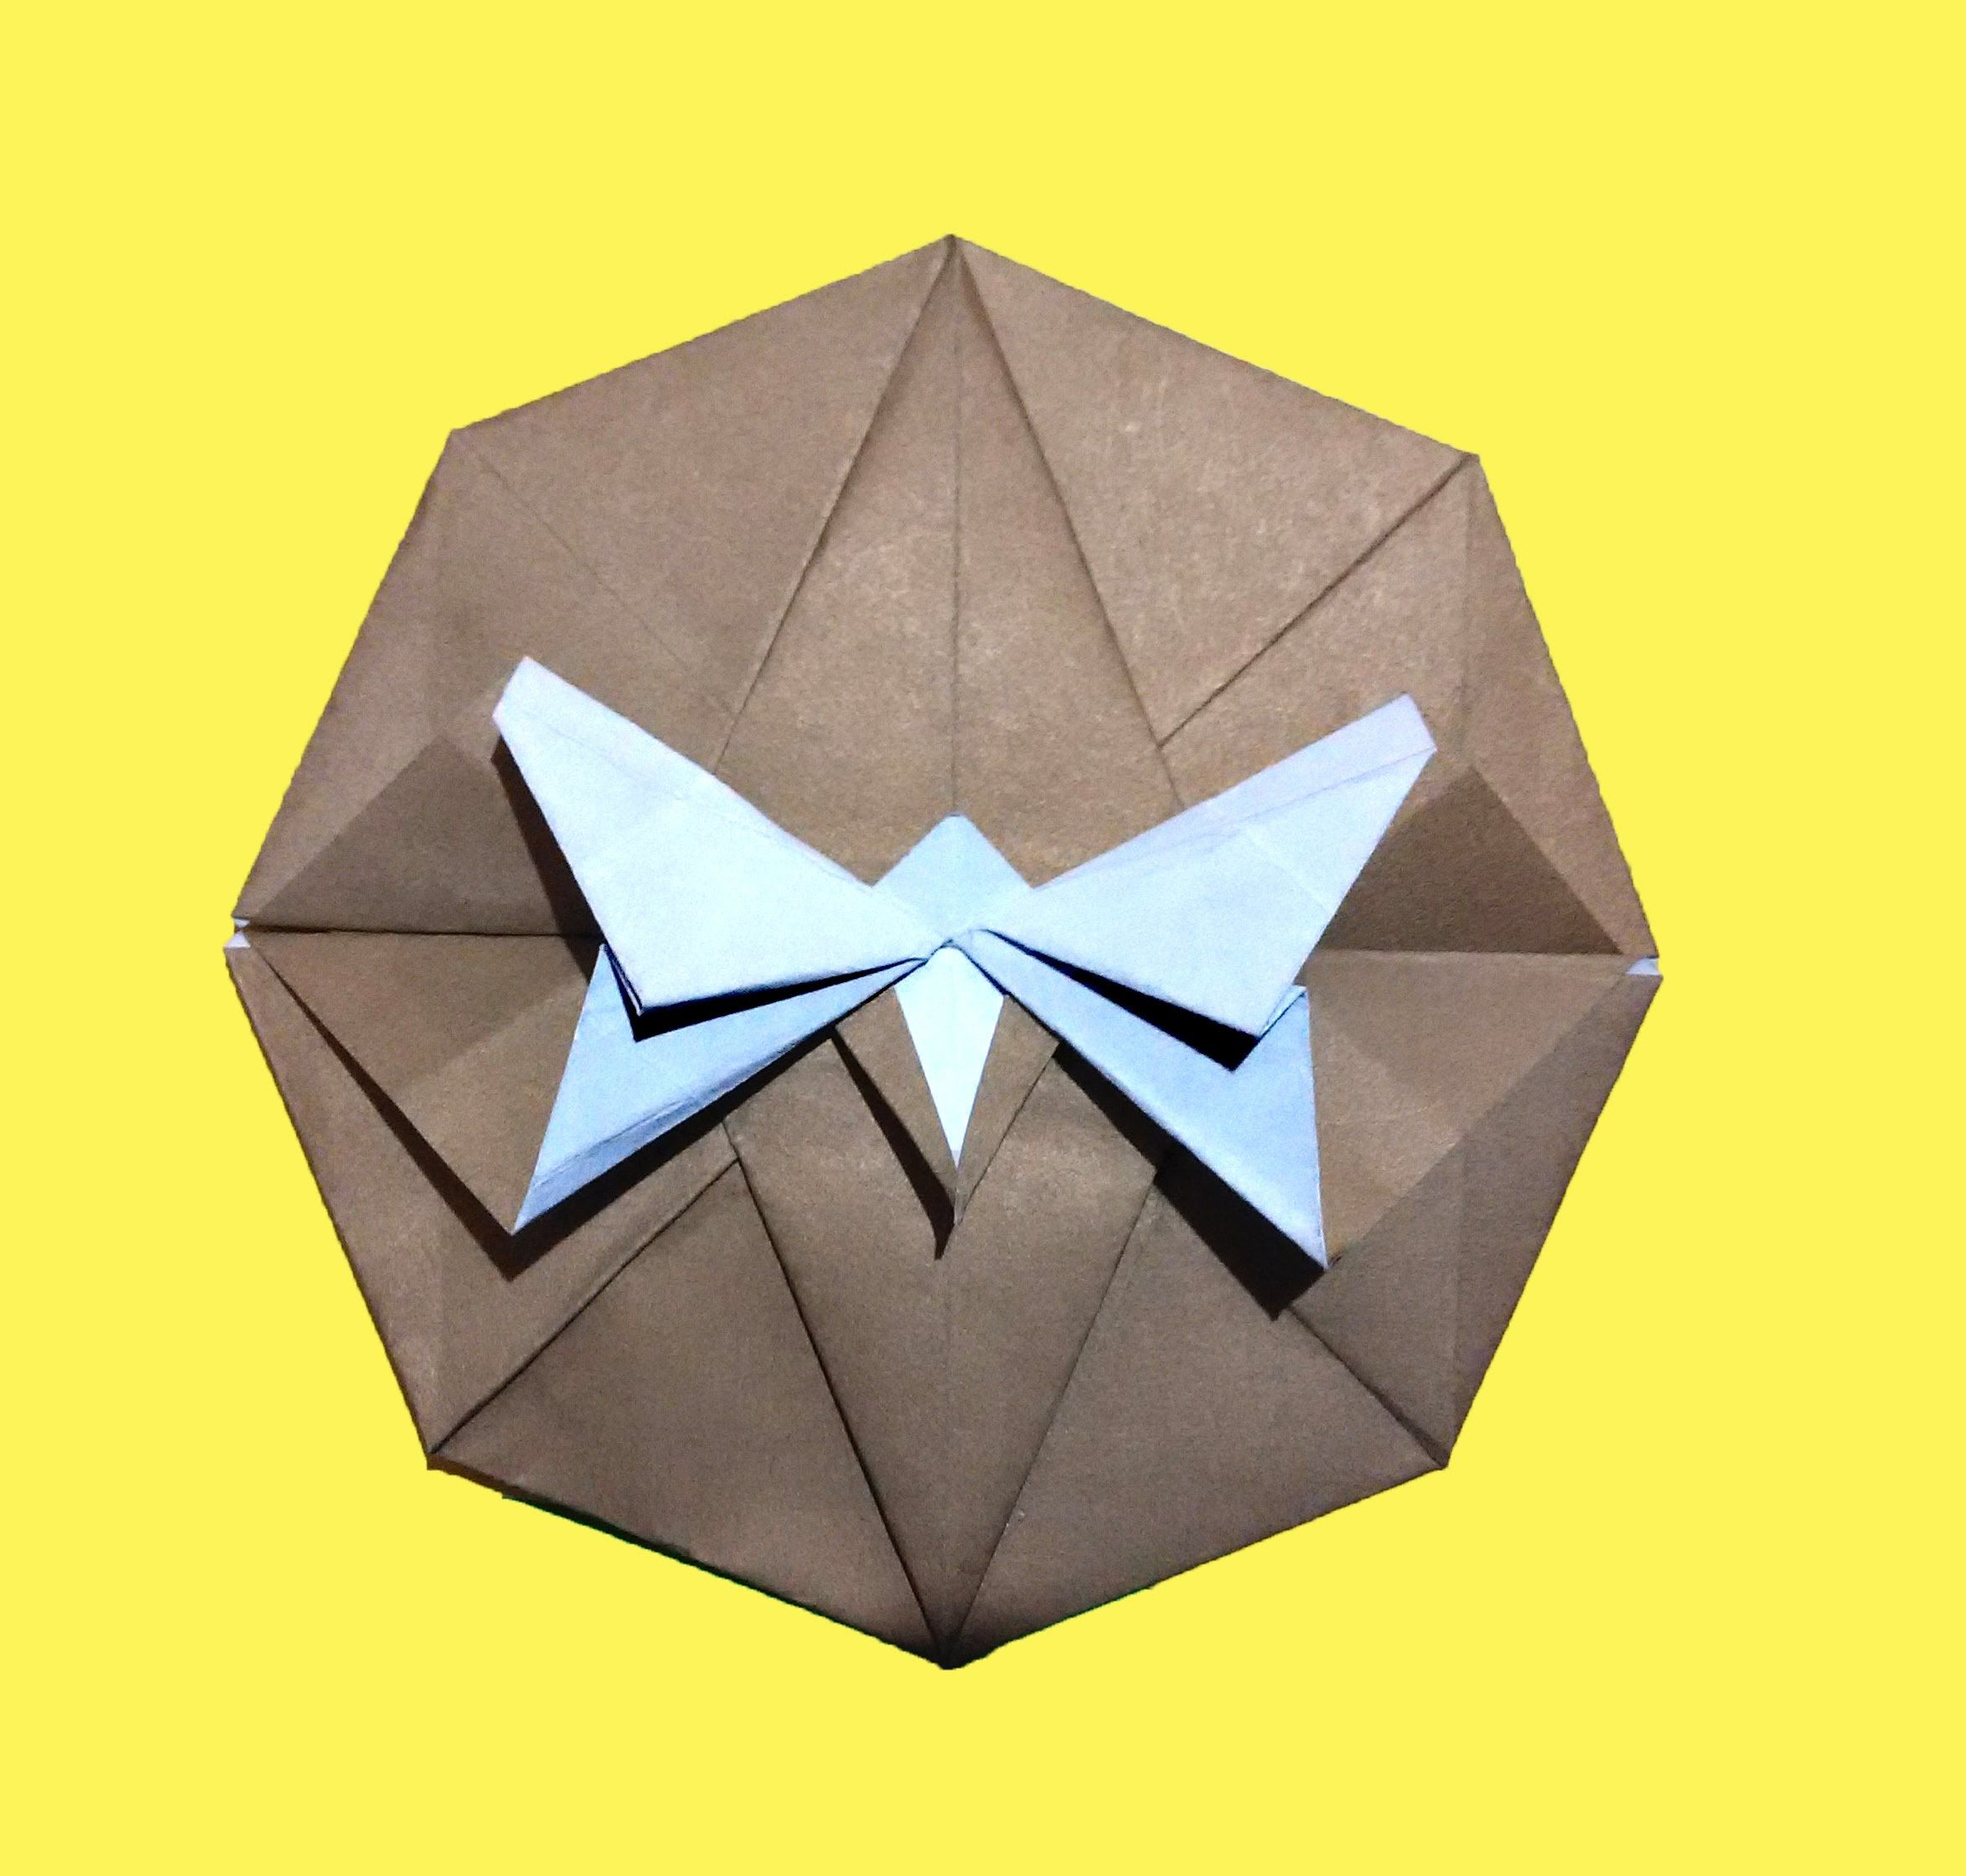 The envelope origami - the original design of the gift 3